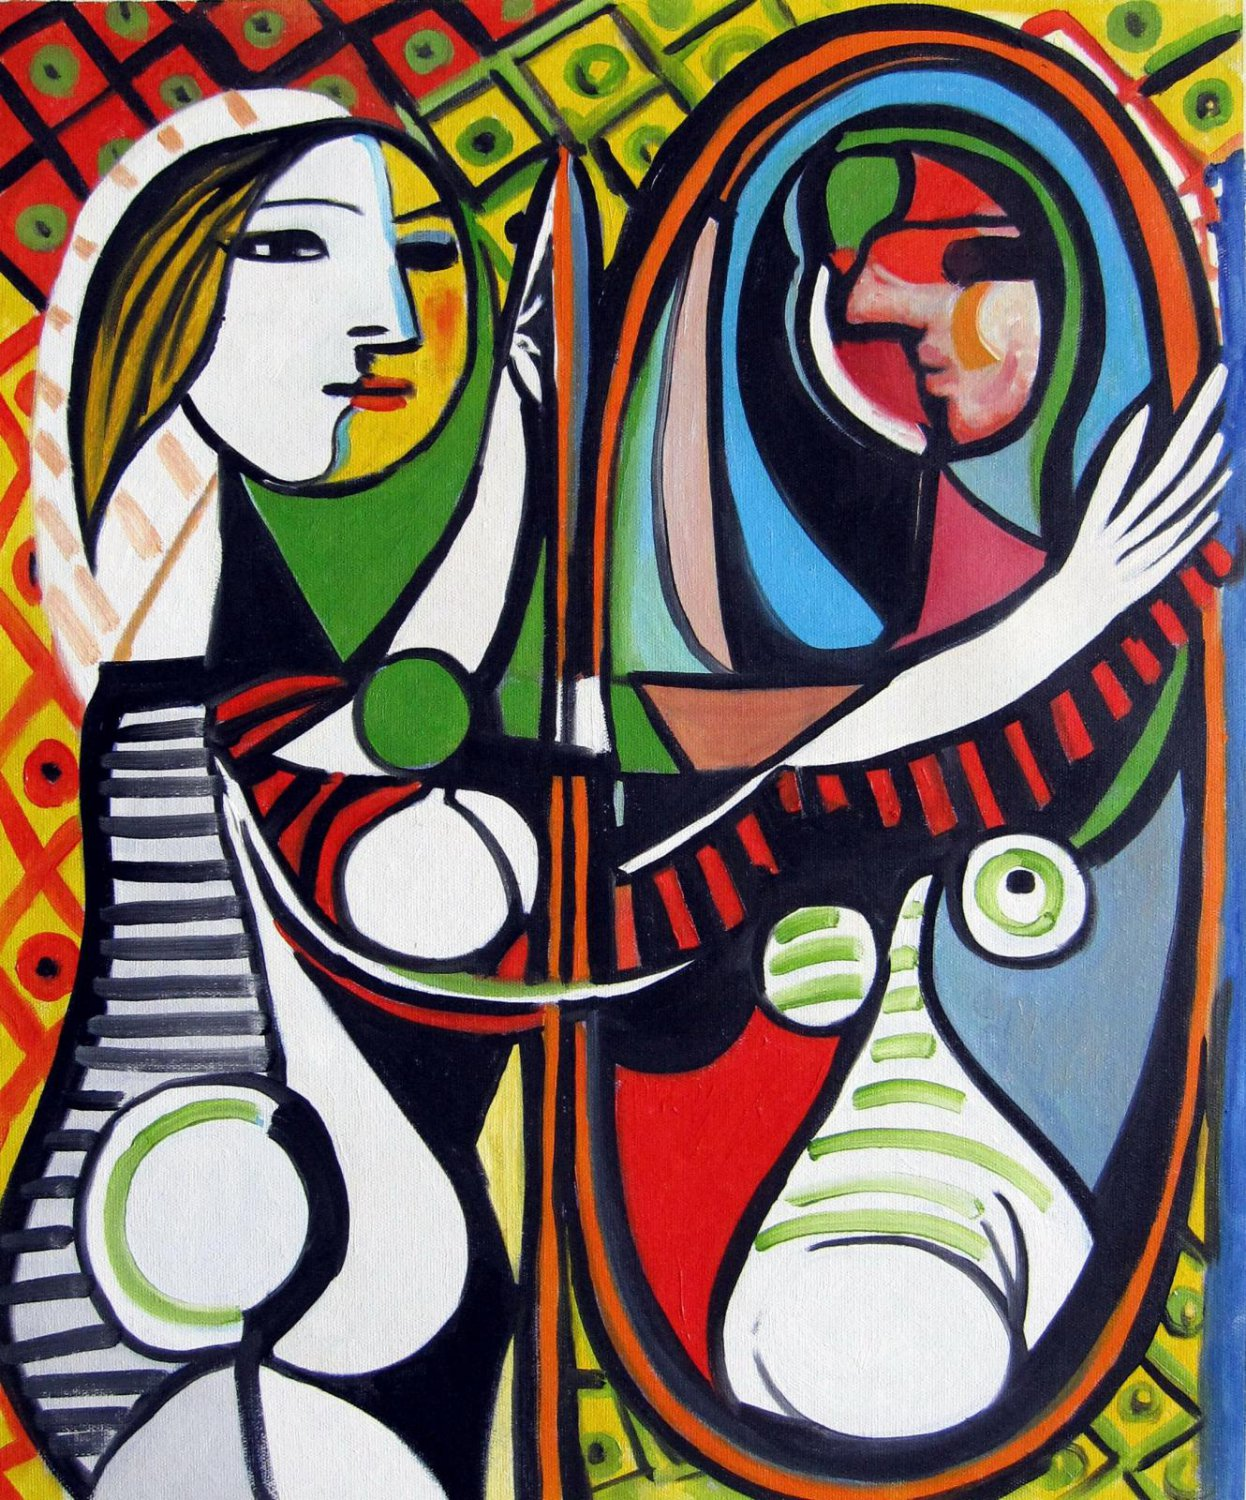 Rep. Pablo Picasso 20x24 in. stretched Oil Painting Canvas Art Wall Decor modern024